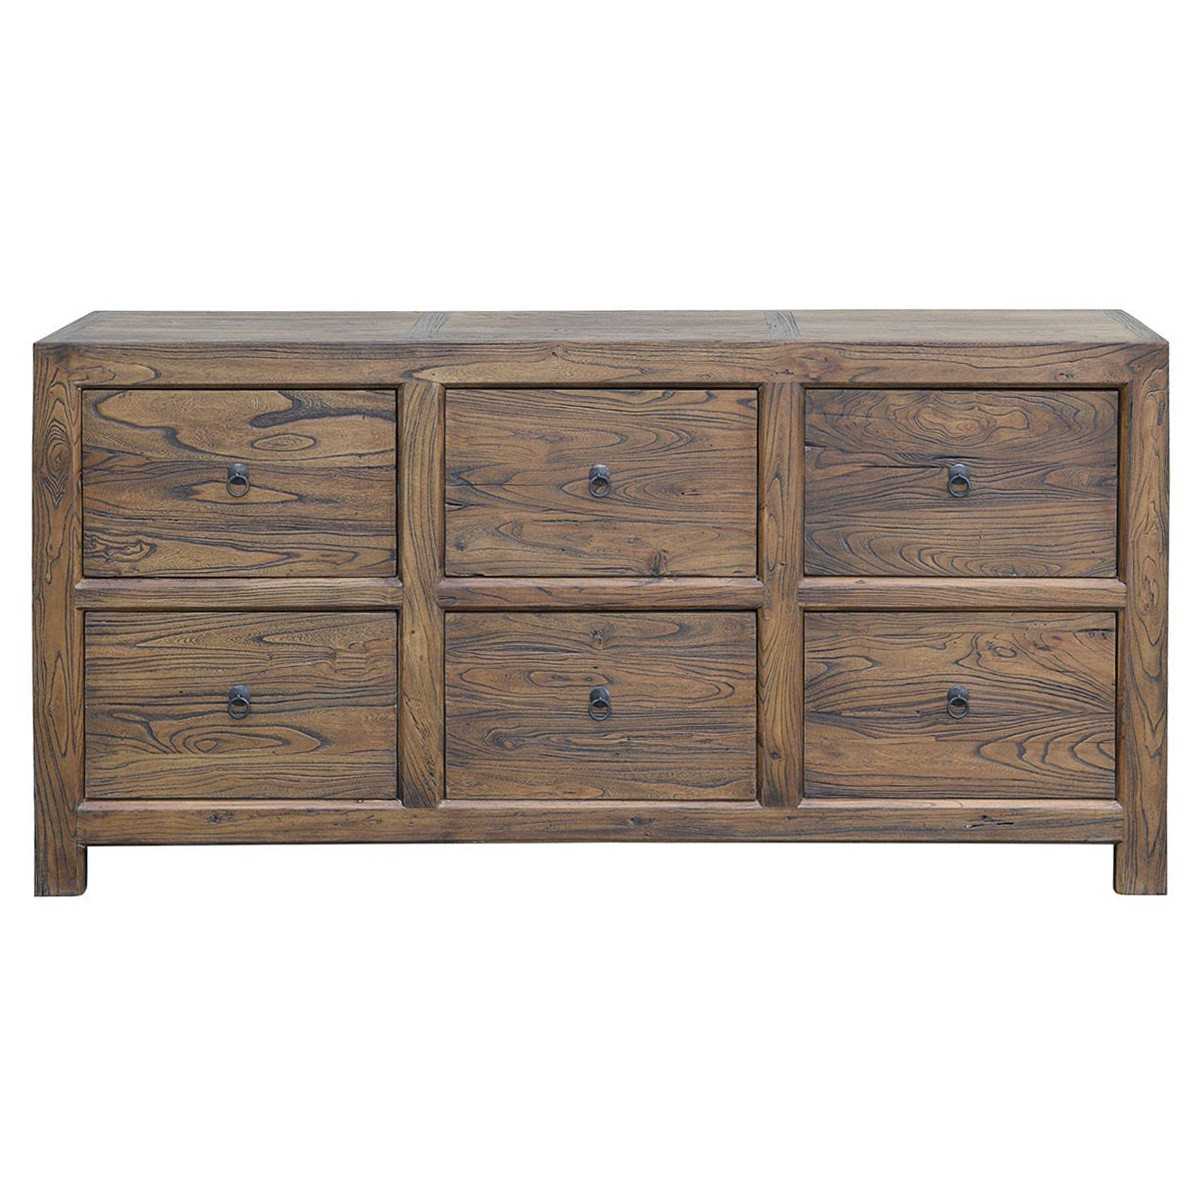 Bordeaux Reclaimed Elm Timber 6 Drawer Chest / Sideboard, 173cm